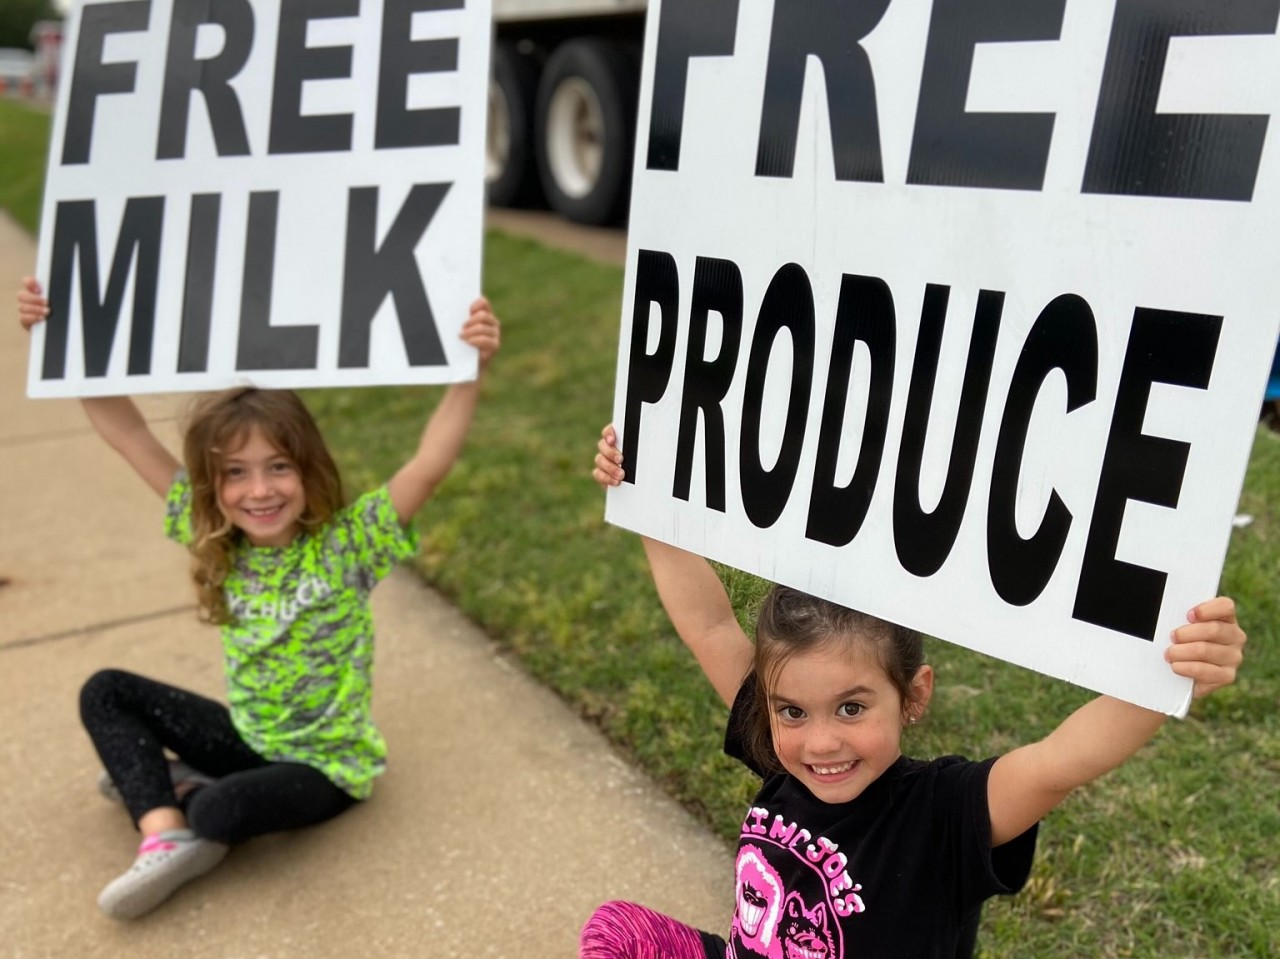 Church-based dairy distribution produces Gospel results